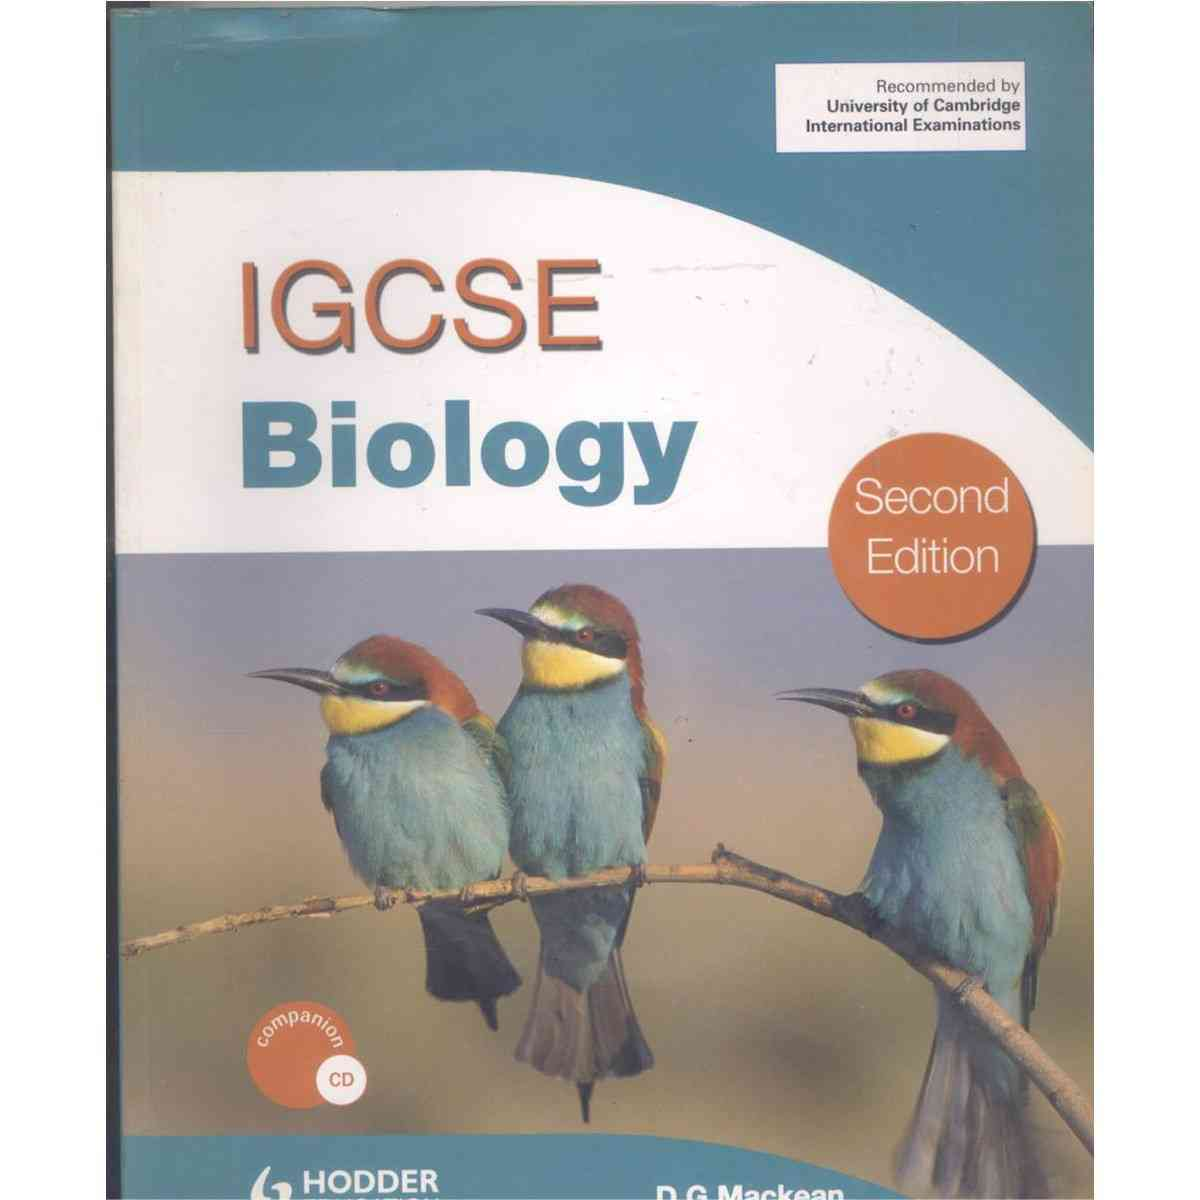 IGCES Biology 2nd Edition By D G Mackean With CD